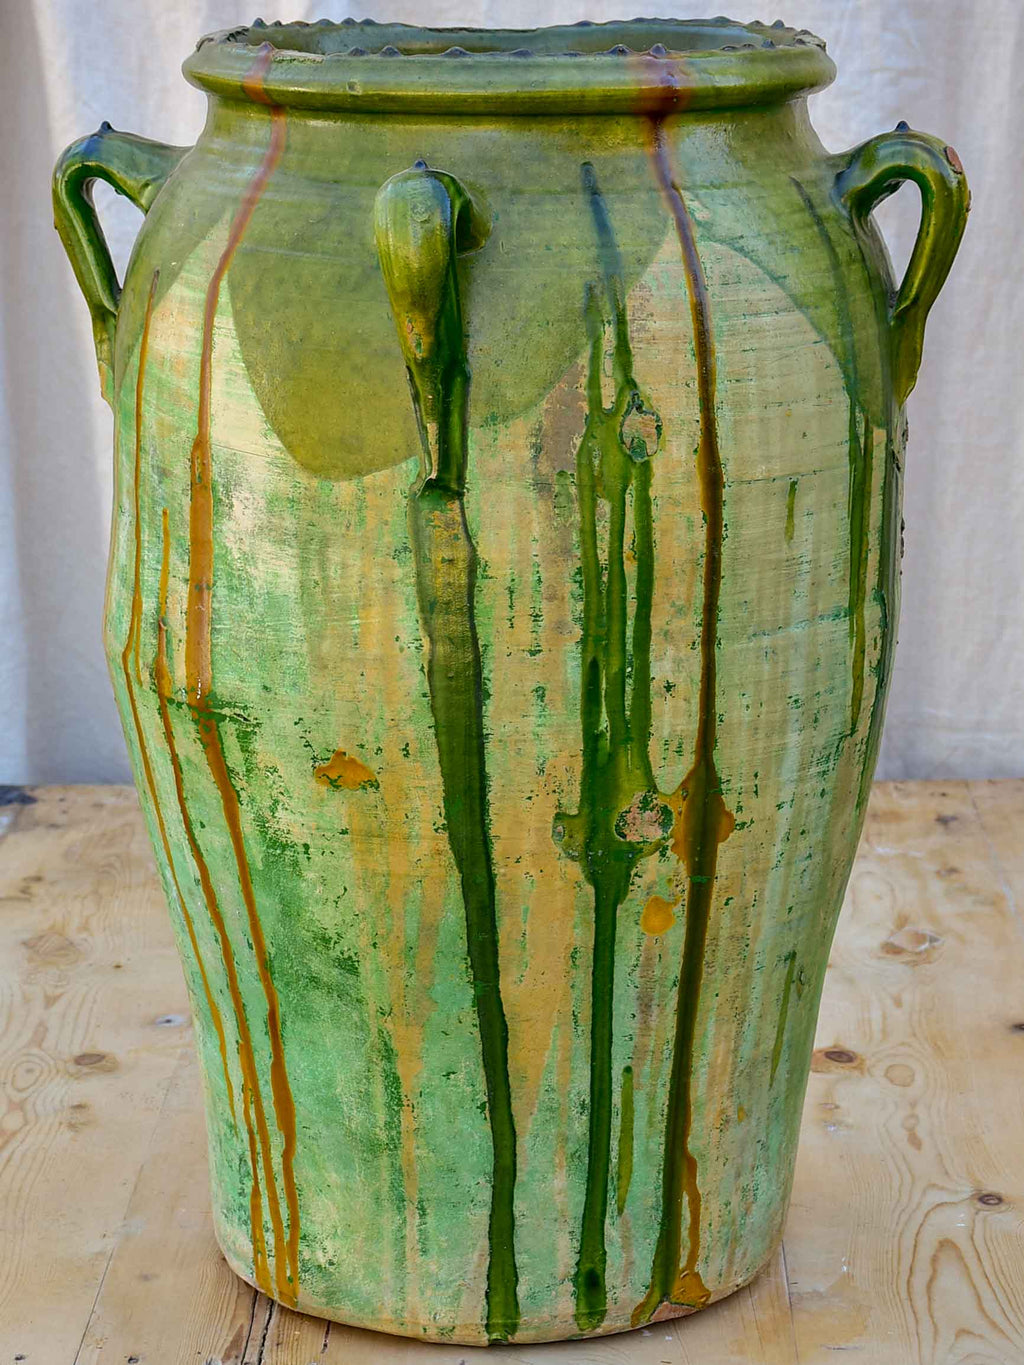 Large antique Spanish oil jar with green glaze